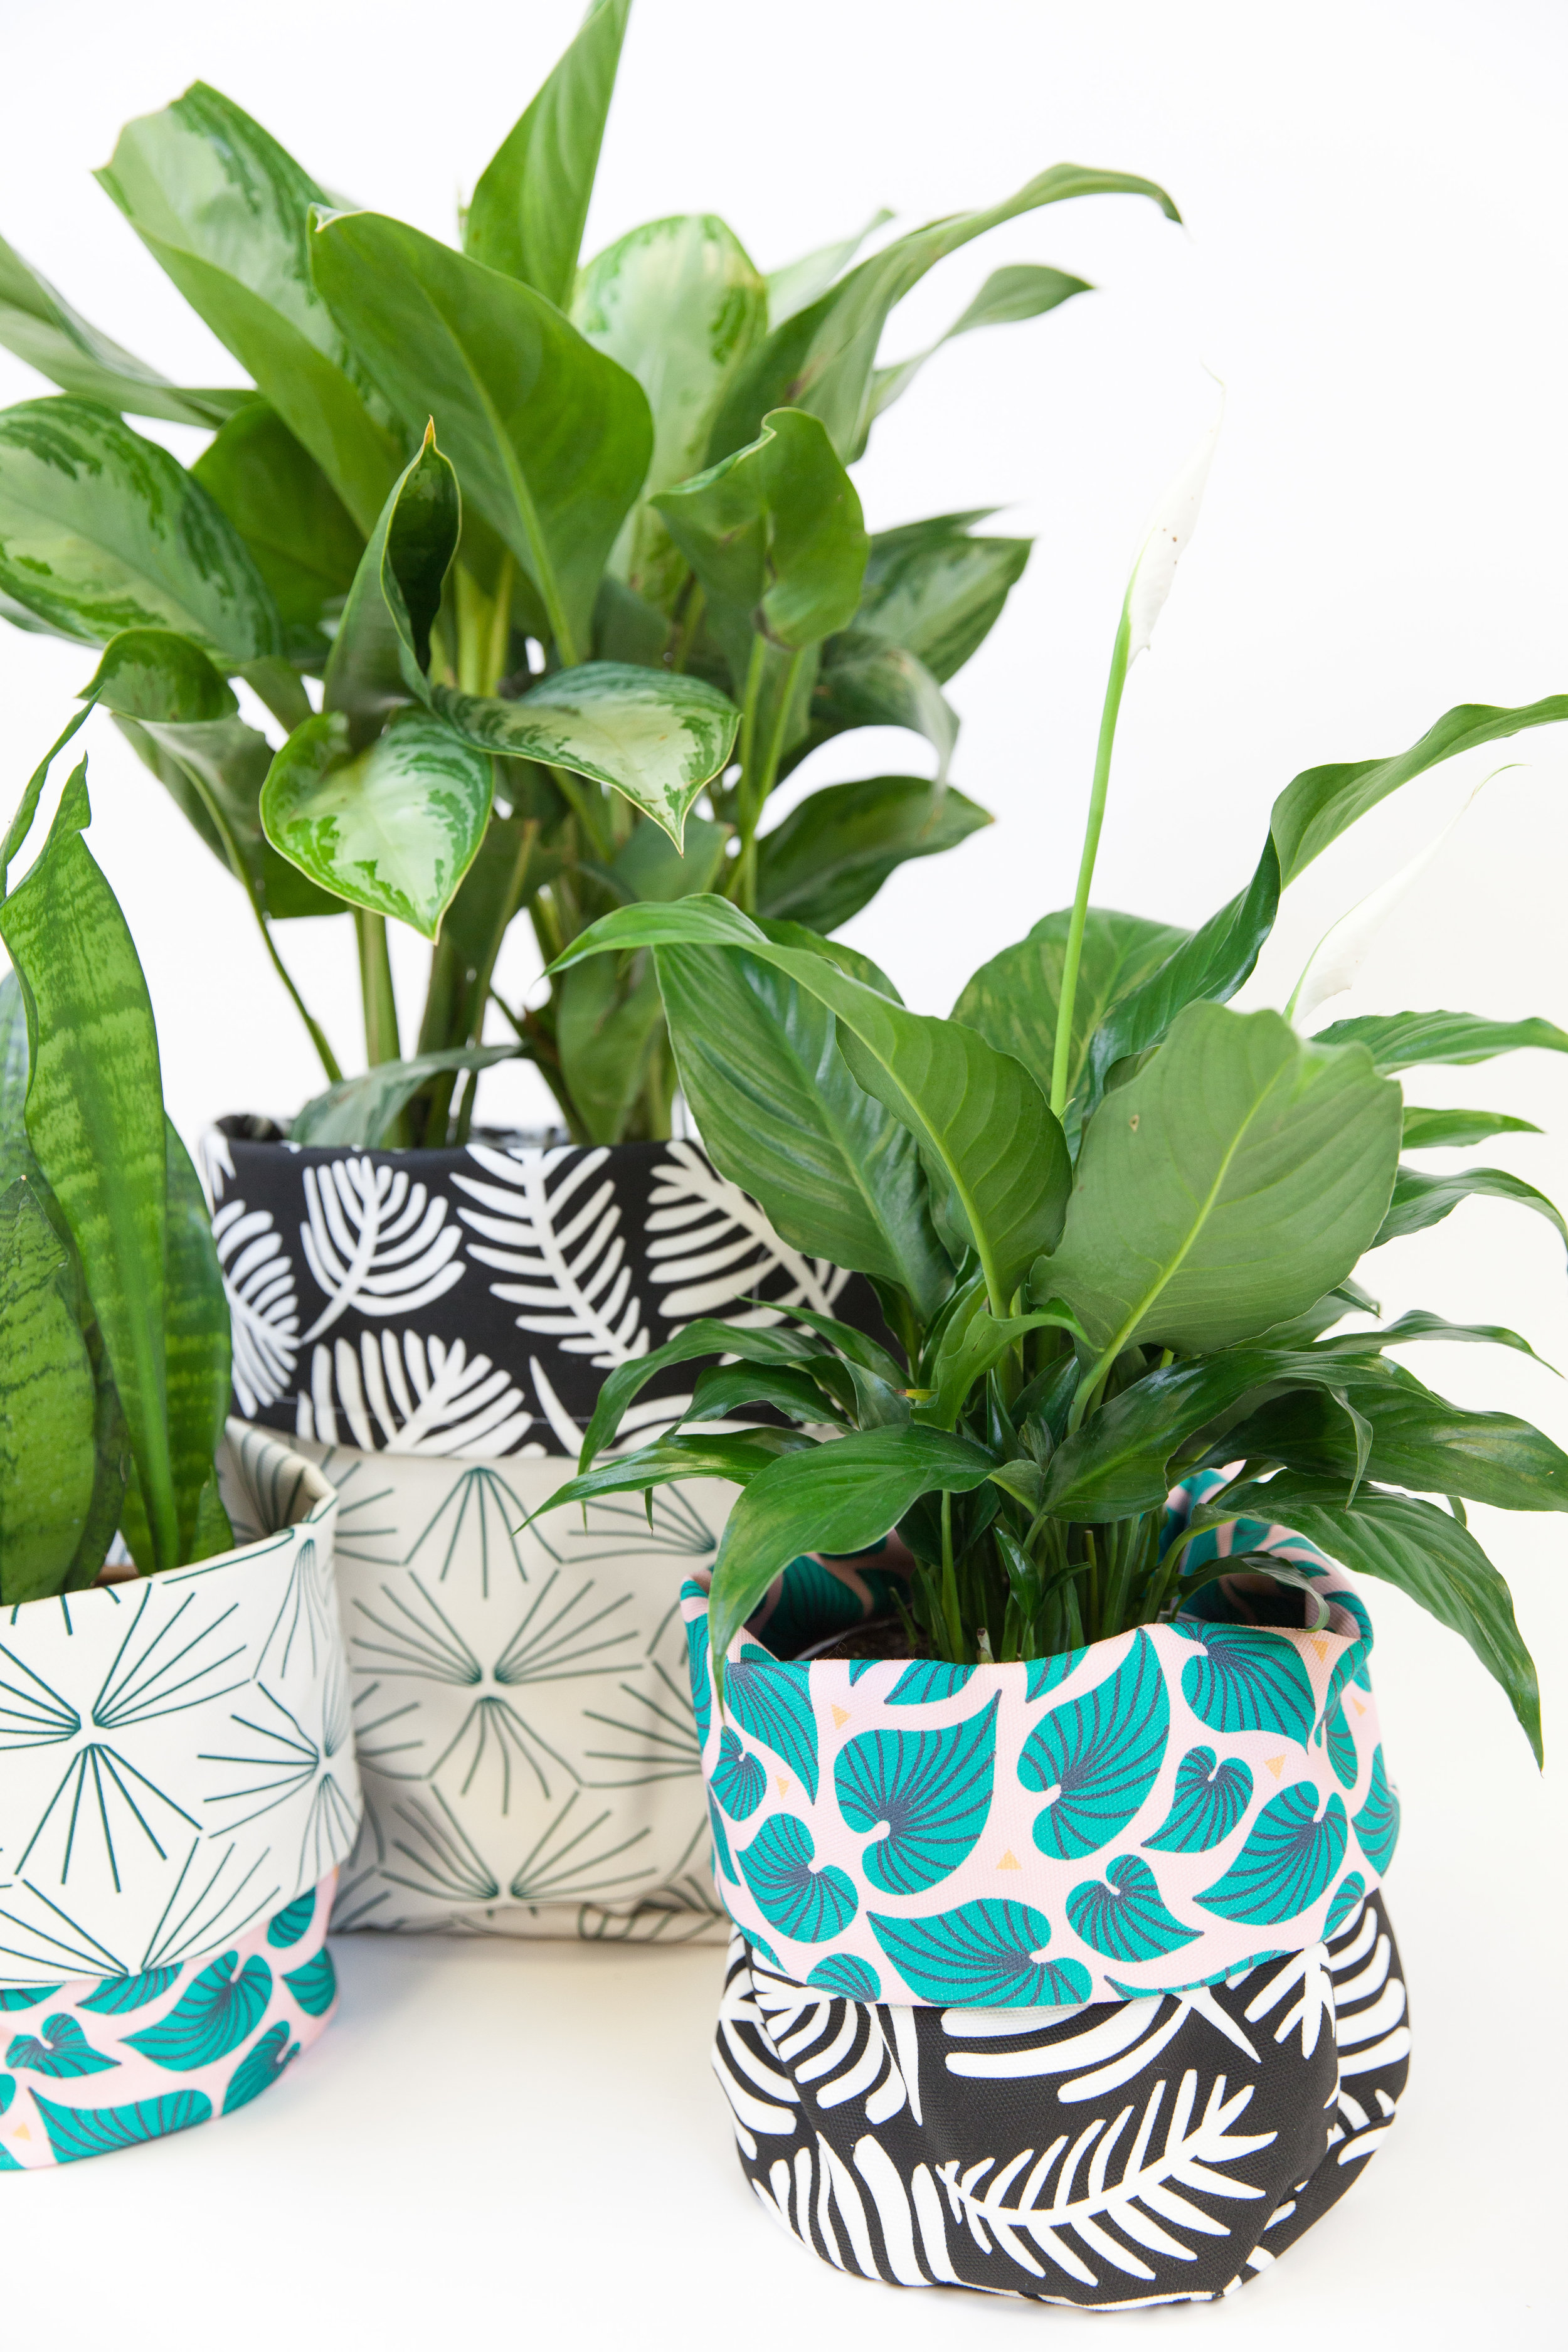 Fabric planters made using Sun Tile Marine by Holli Zollinger and Bahama Palm by lemonni